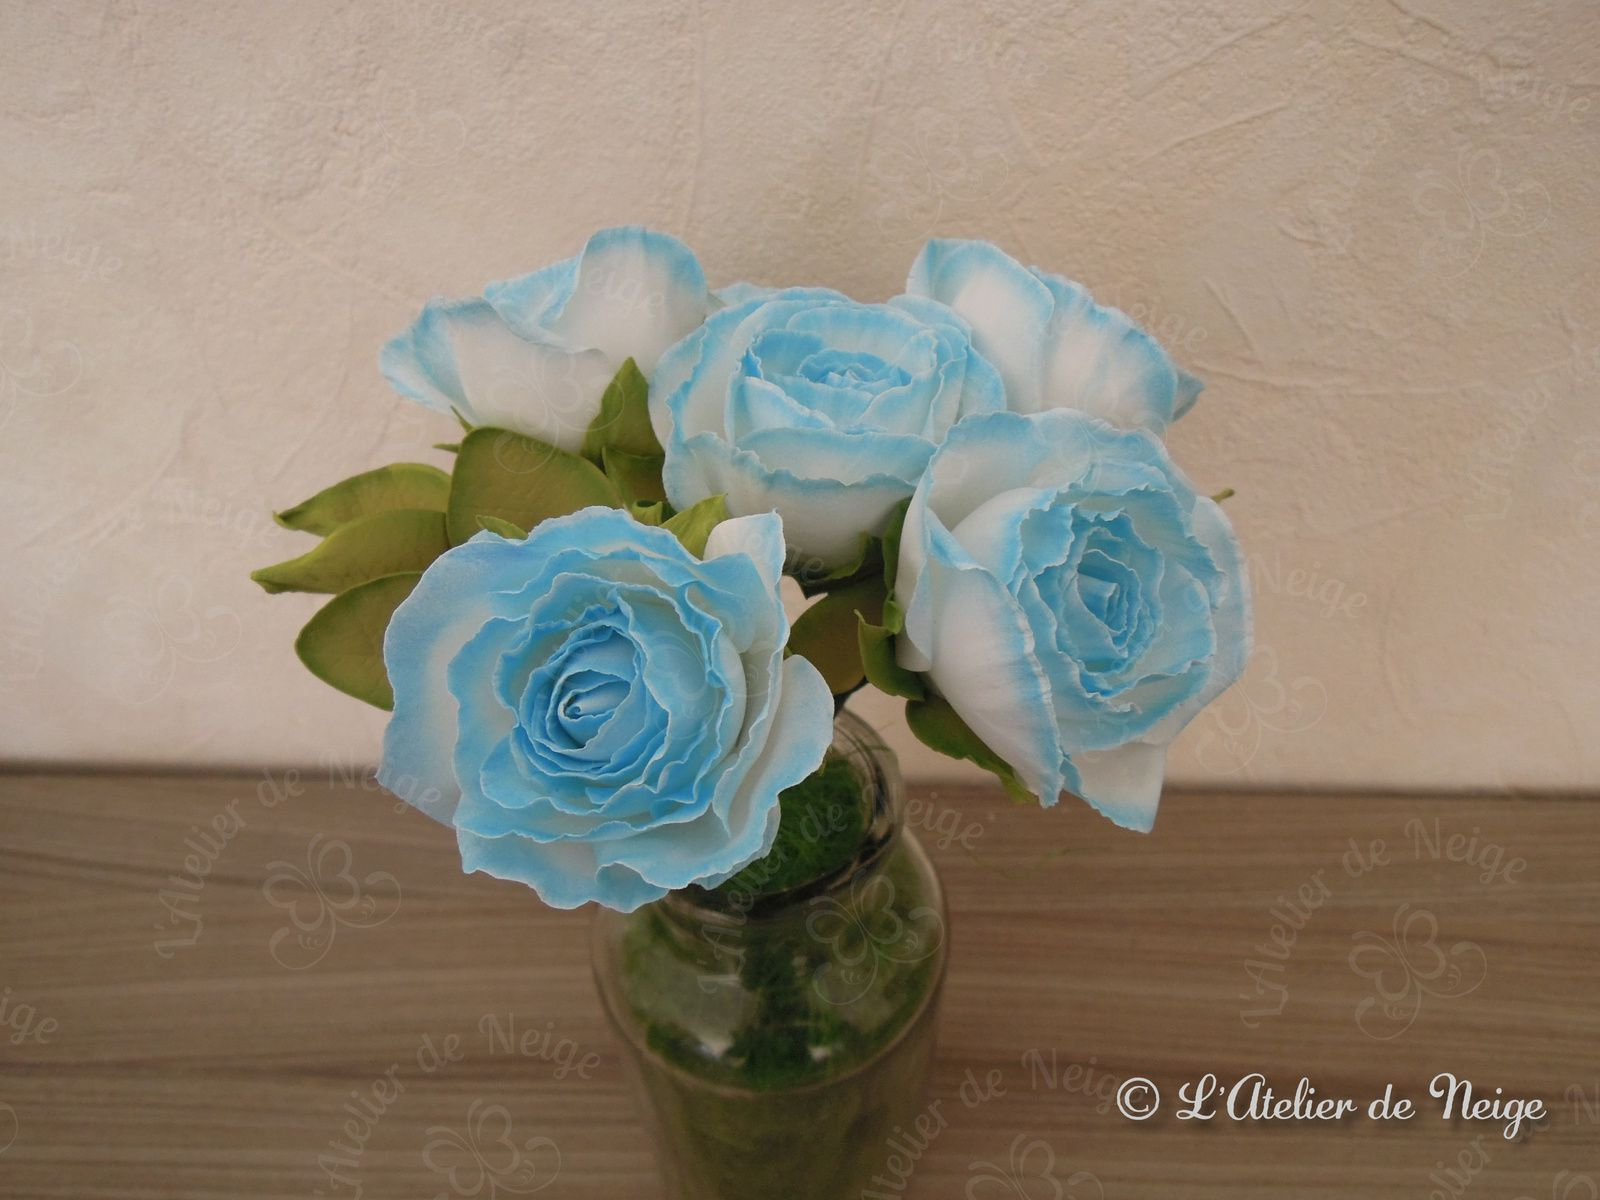 057 - Bouquet de Roses Bleues et Blanches Communion Alice 11 avril 2021